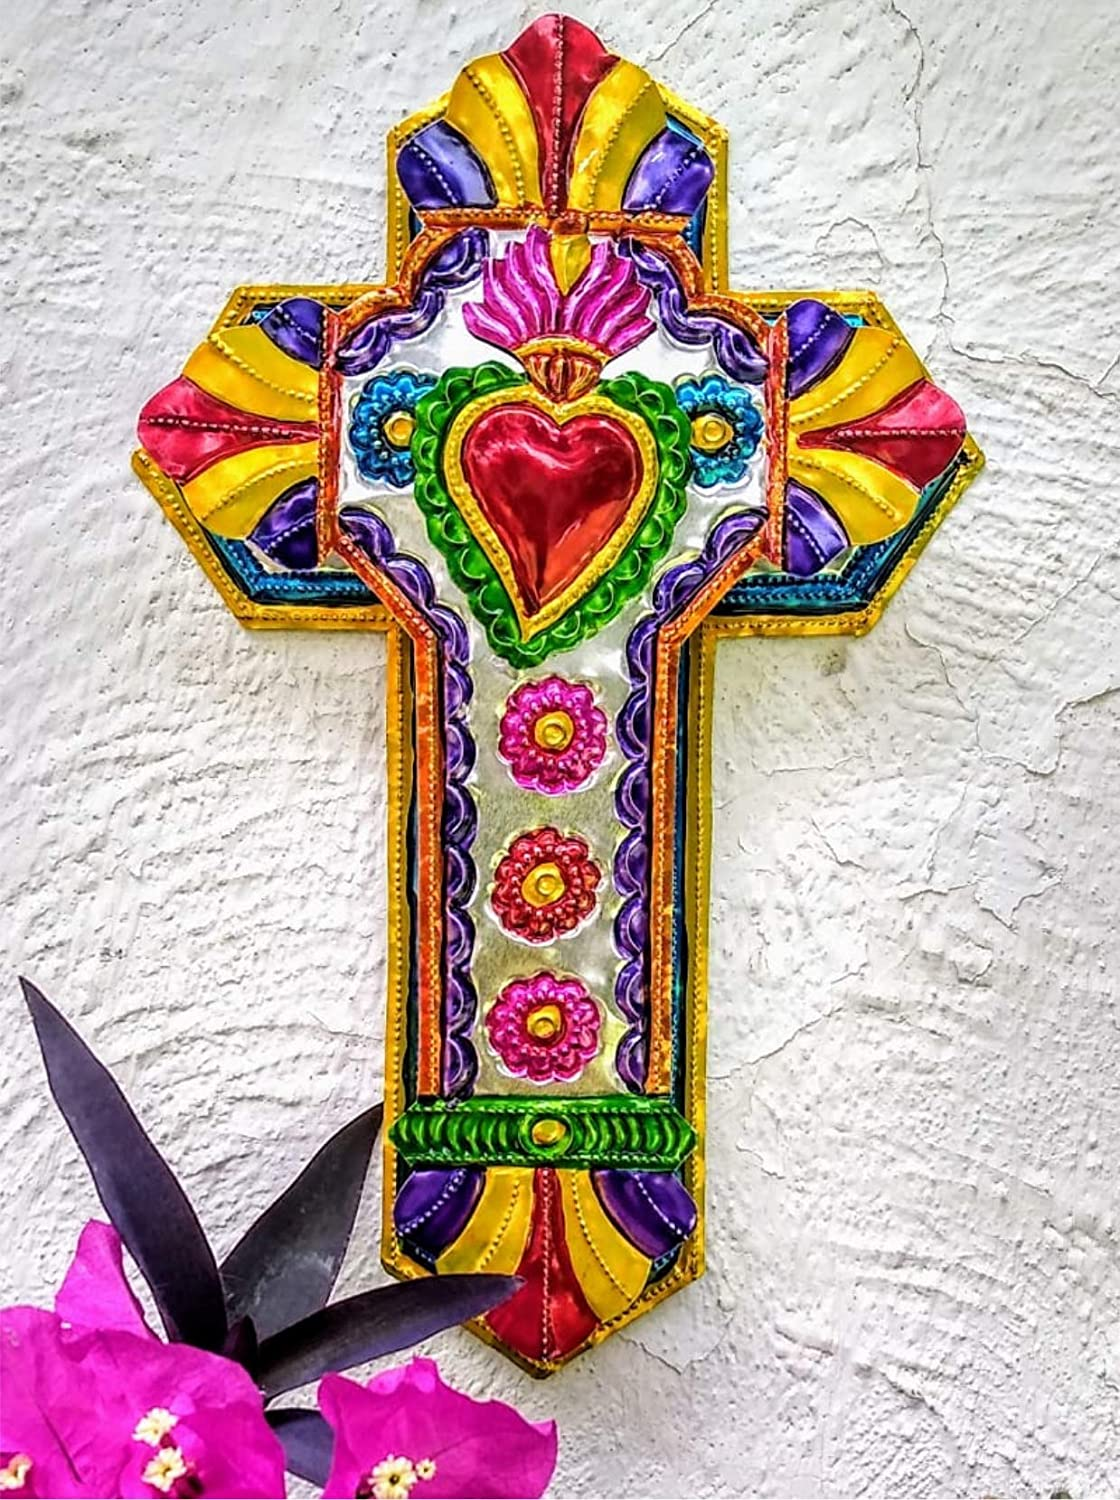 "Mexican Cross Art Wall Decor 12"" x 7.5"" Tin Folk Art Sacred Hearts Hand Painted Embossed Colorful Ornament Metal Charms Ex Voto Milagros Mexicanos -Handmade"